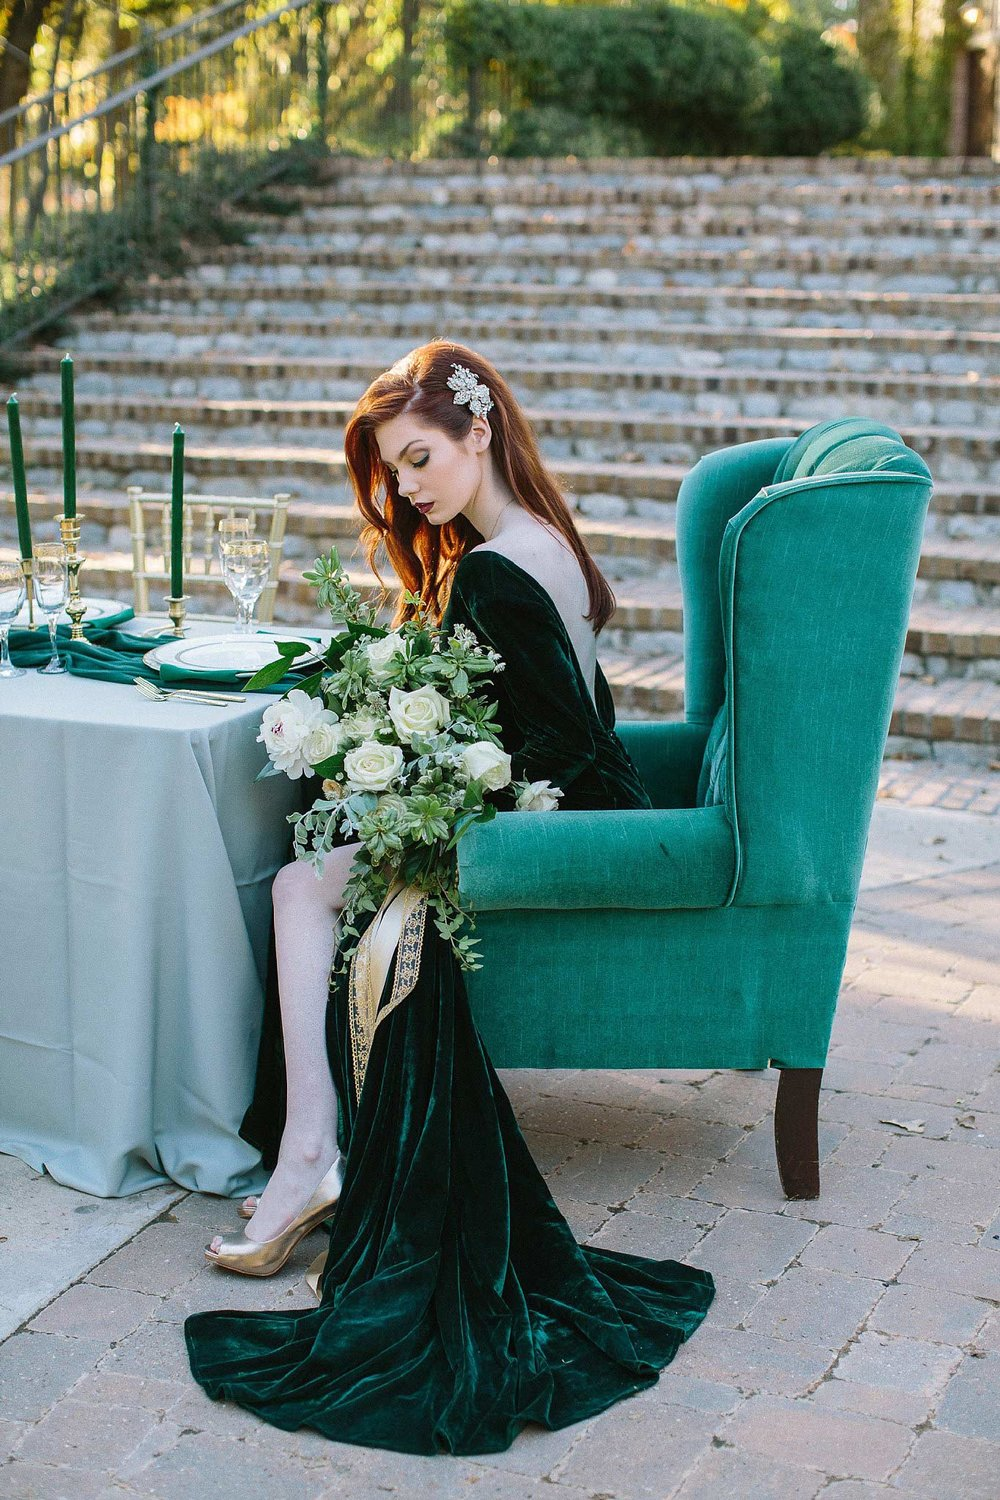 aristide mansfield wedding bridesmaid with green dress sitting at vintage green chair